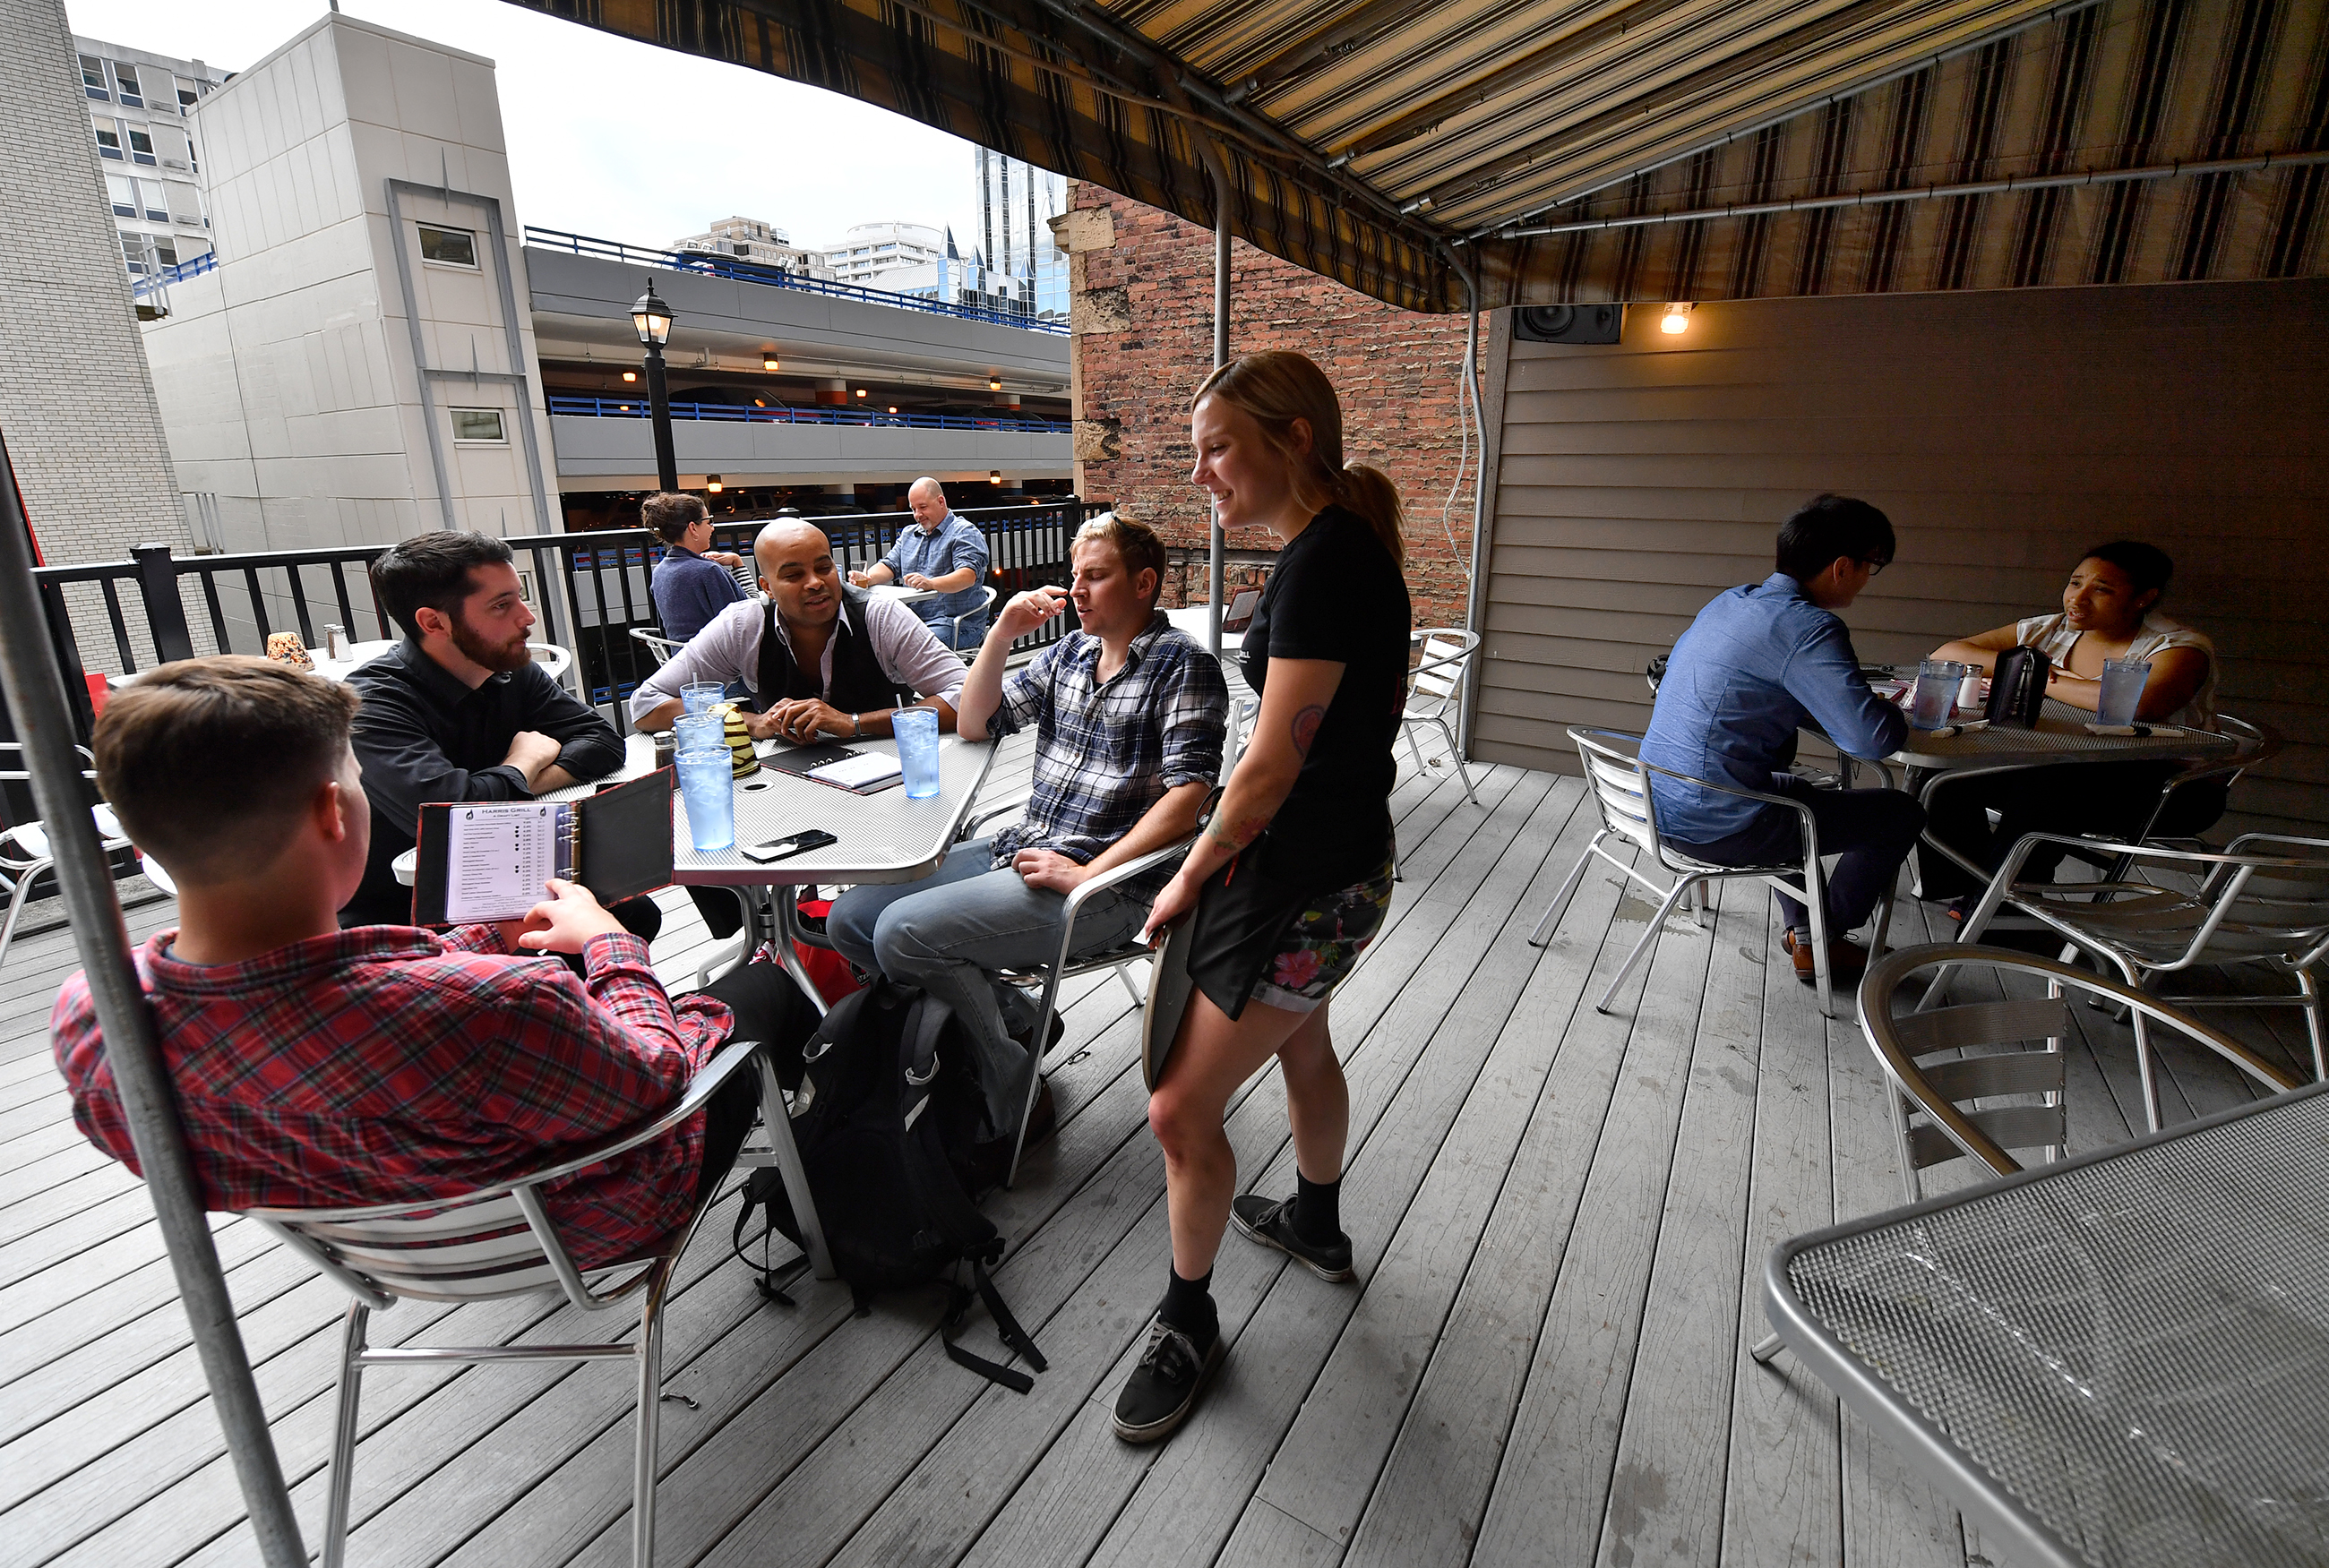 20170627mfdiningmag Patrons enjoy rooftop seating at the Harris Grill Tuesday, June 27, in Downtown Pittsburgh. (Matt Freed/Post-Gazette)